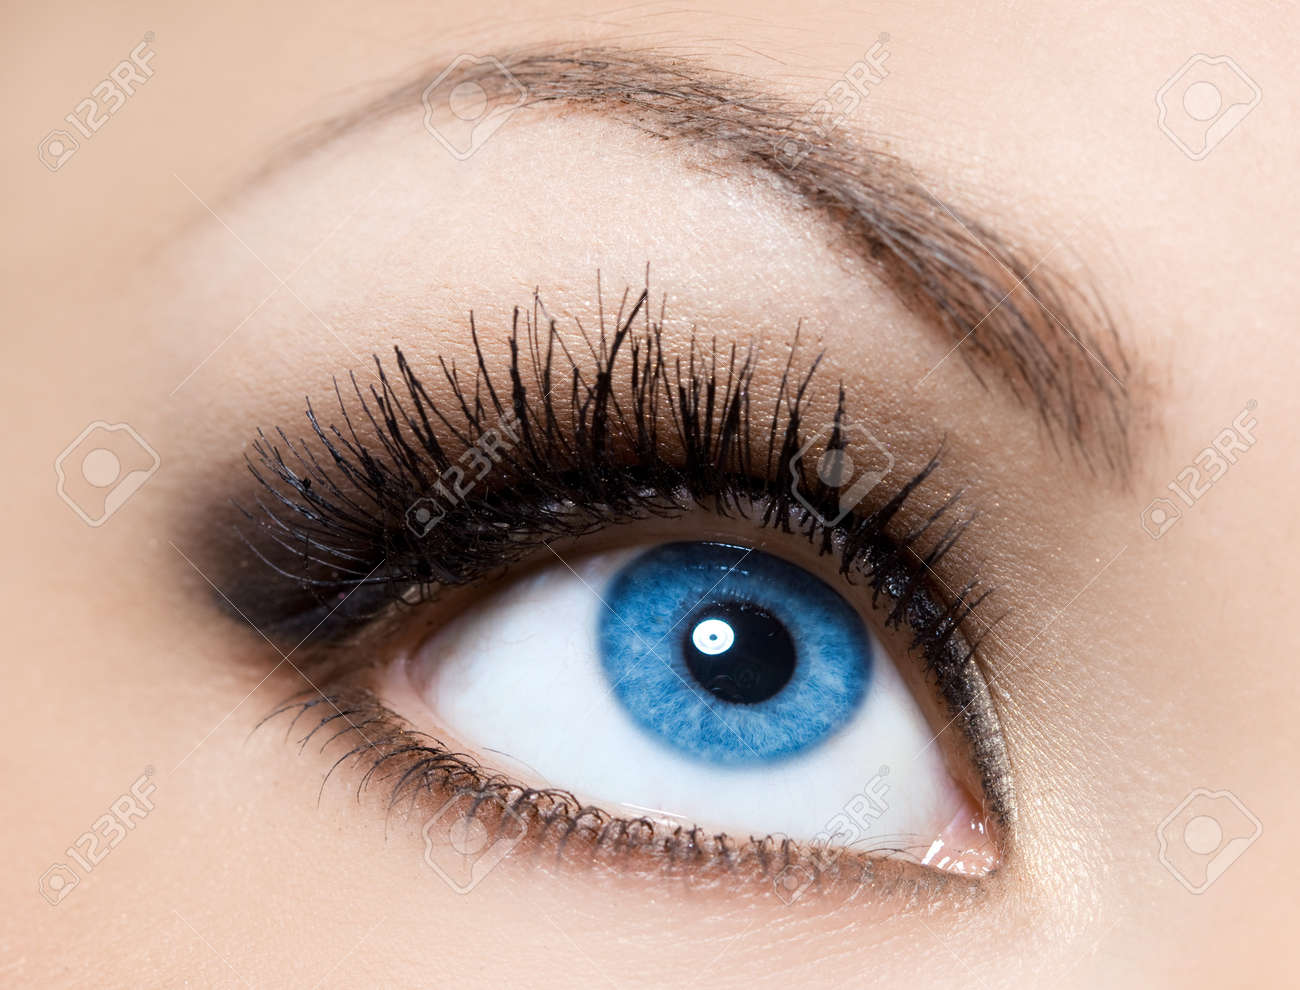 close-up of beautiful womanish eye Stock Photo - 8189775